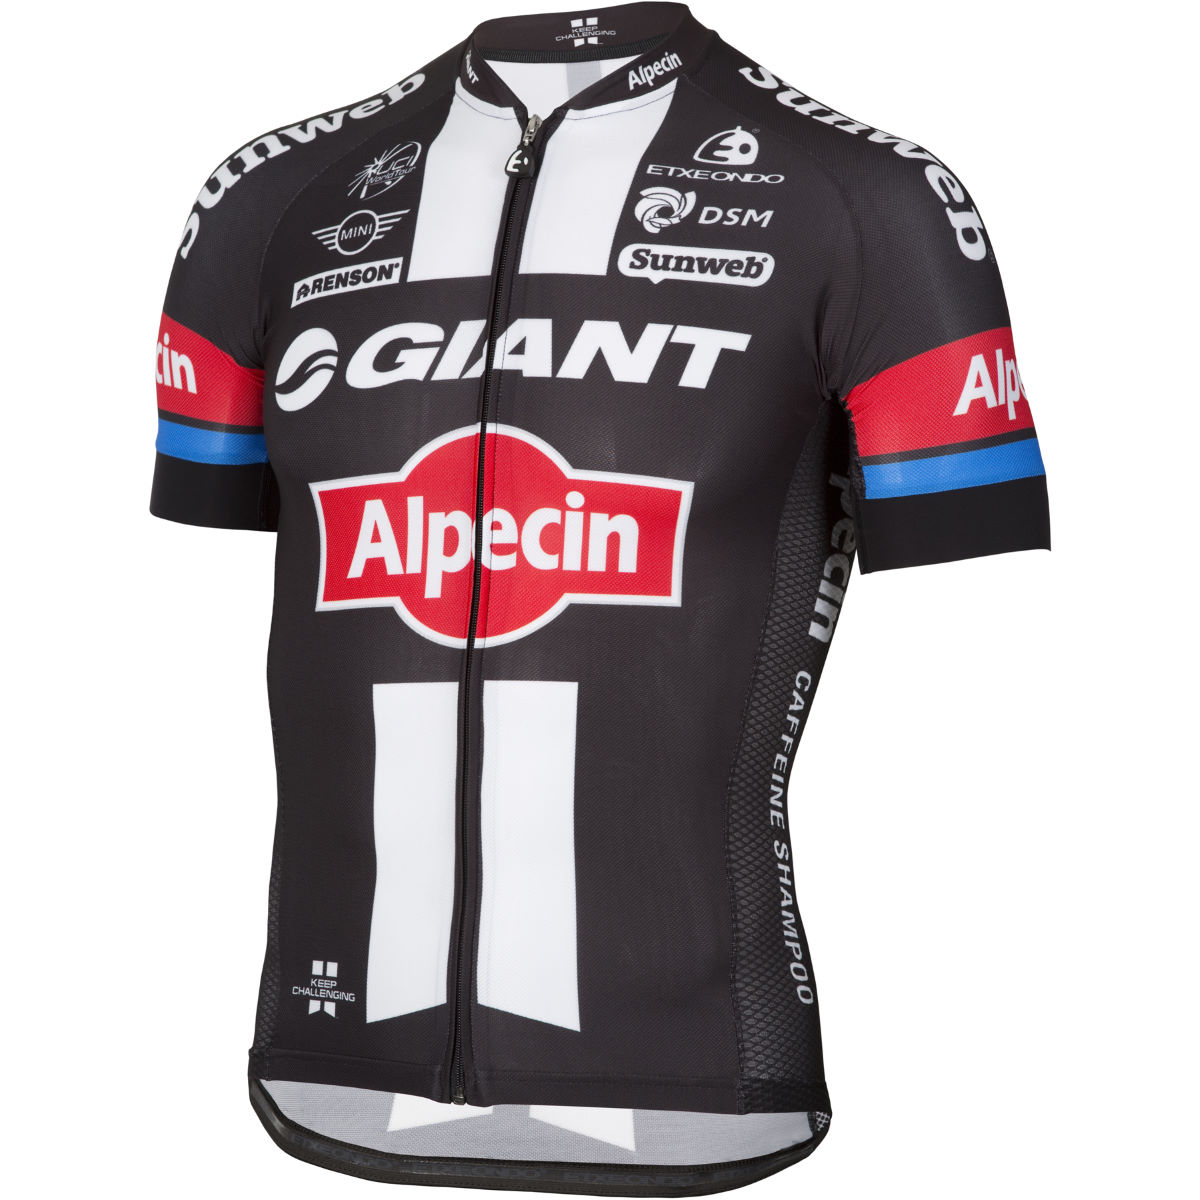 Maillot Etxeondo Giant Alpecin Authentic Climbers - M Black/White/Red Maillots des équipes pro